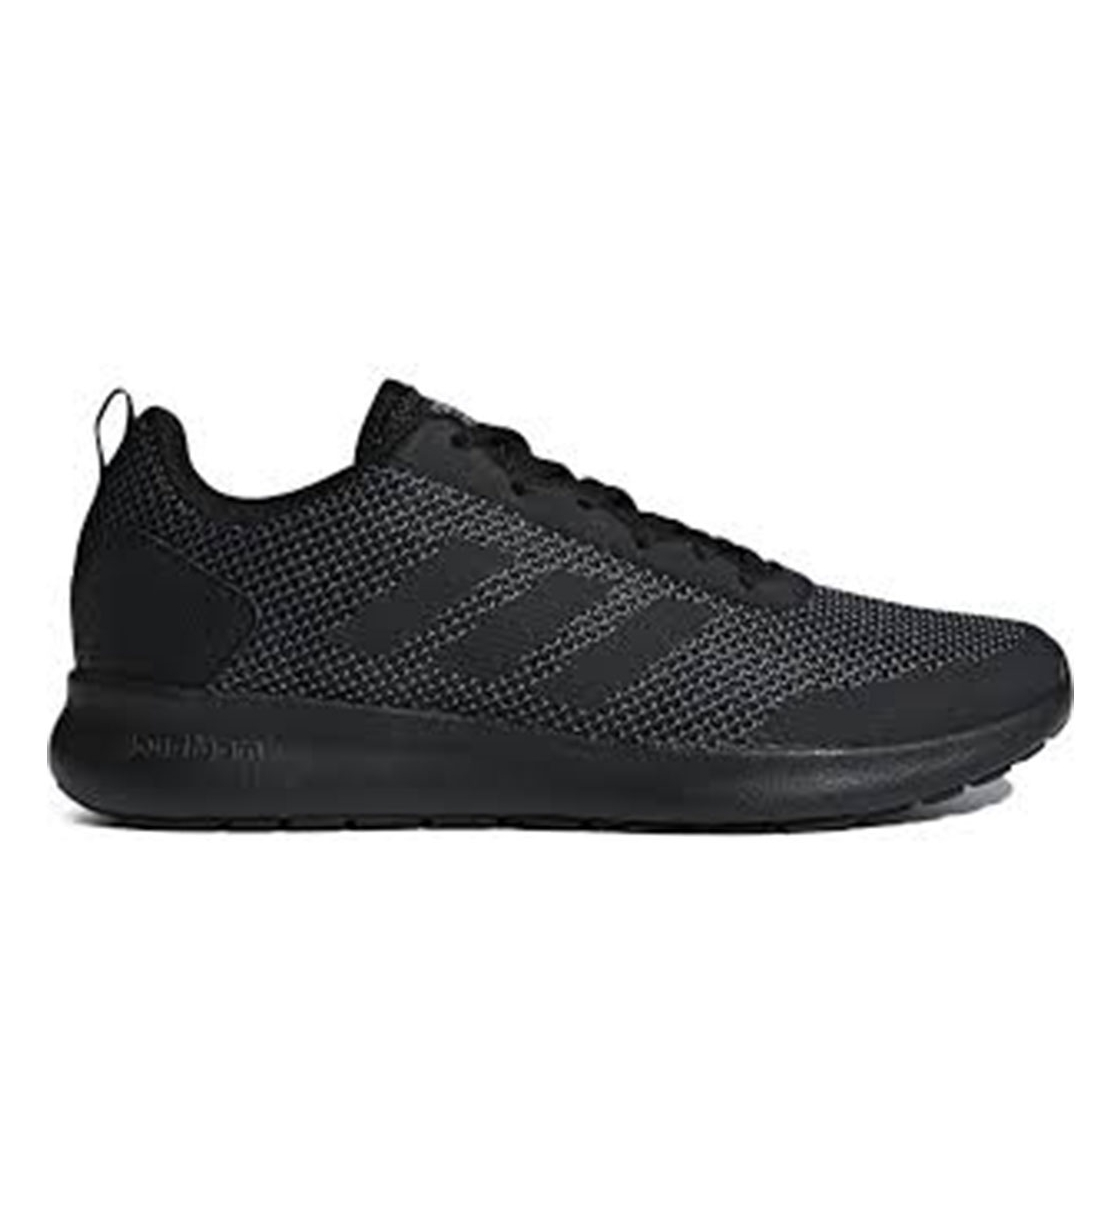 adidas Ανδρικό Παπούτσι Athleisure Element Race DB1455